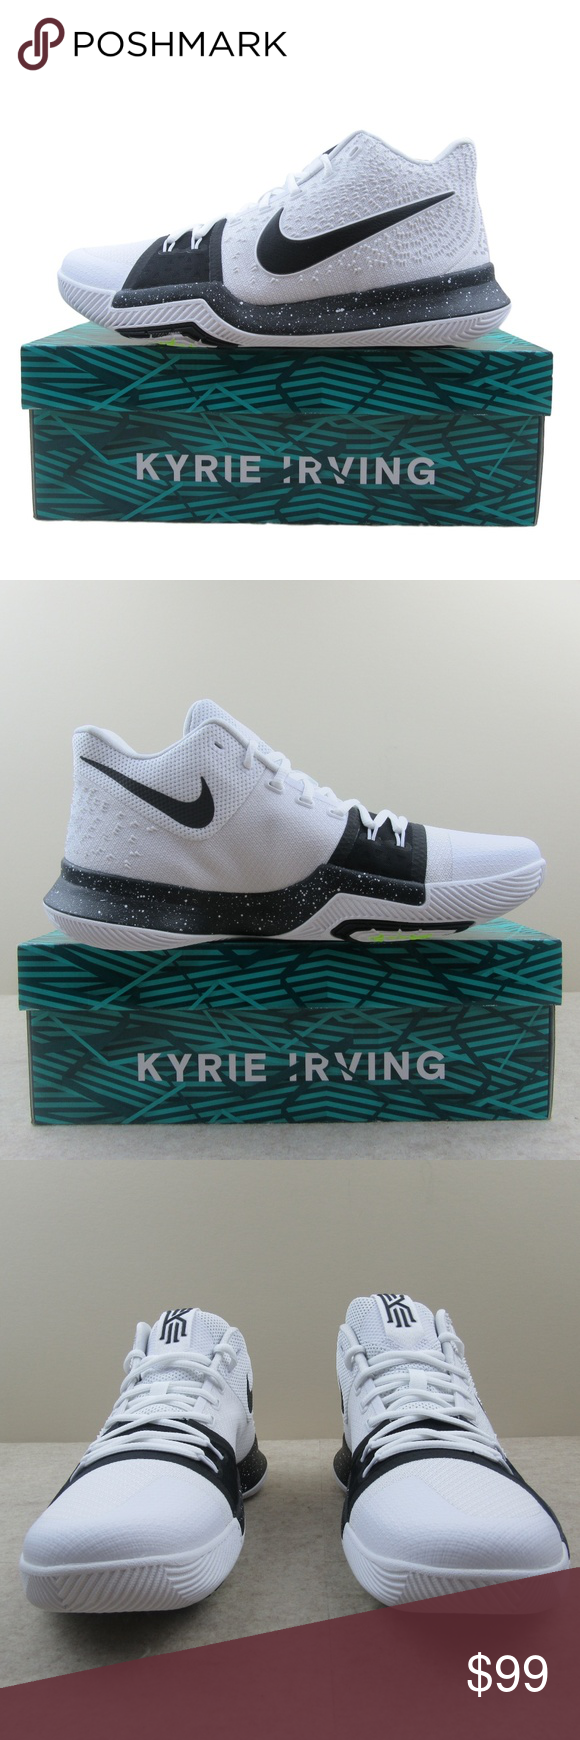 cee4a6ab293 Nike Kyrie 3 TB Basketball Shoes Size 11 Mens Nike Kyrie 3 TB Basketball  Shoes Men s Cookies   Cream White Black Style - 917724 100 Men s Size 11  Brand NEW ...